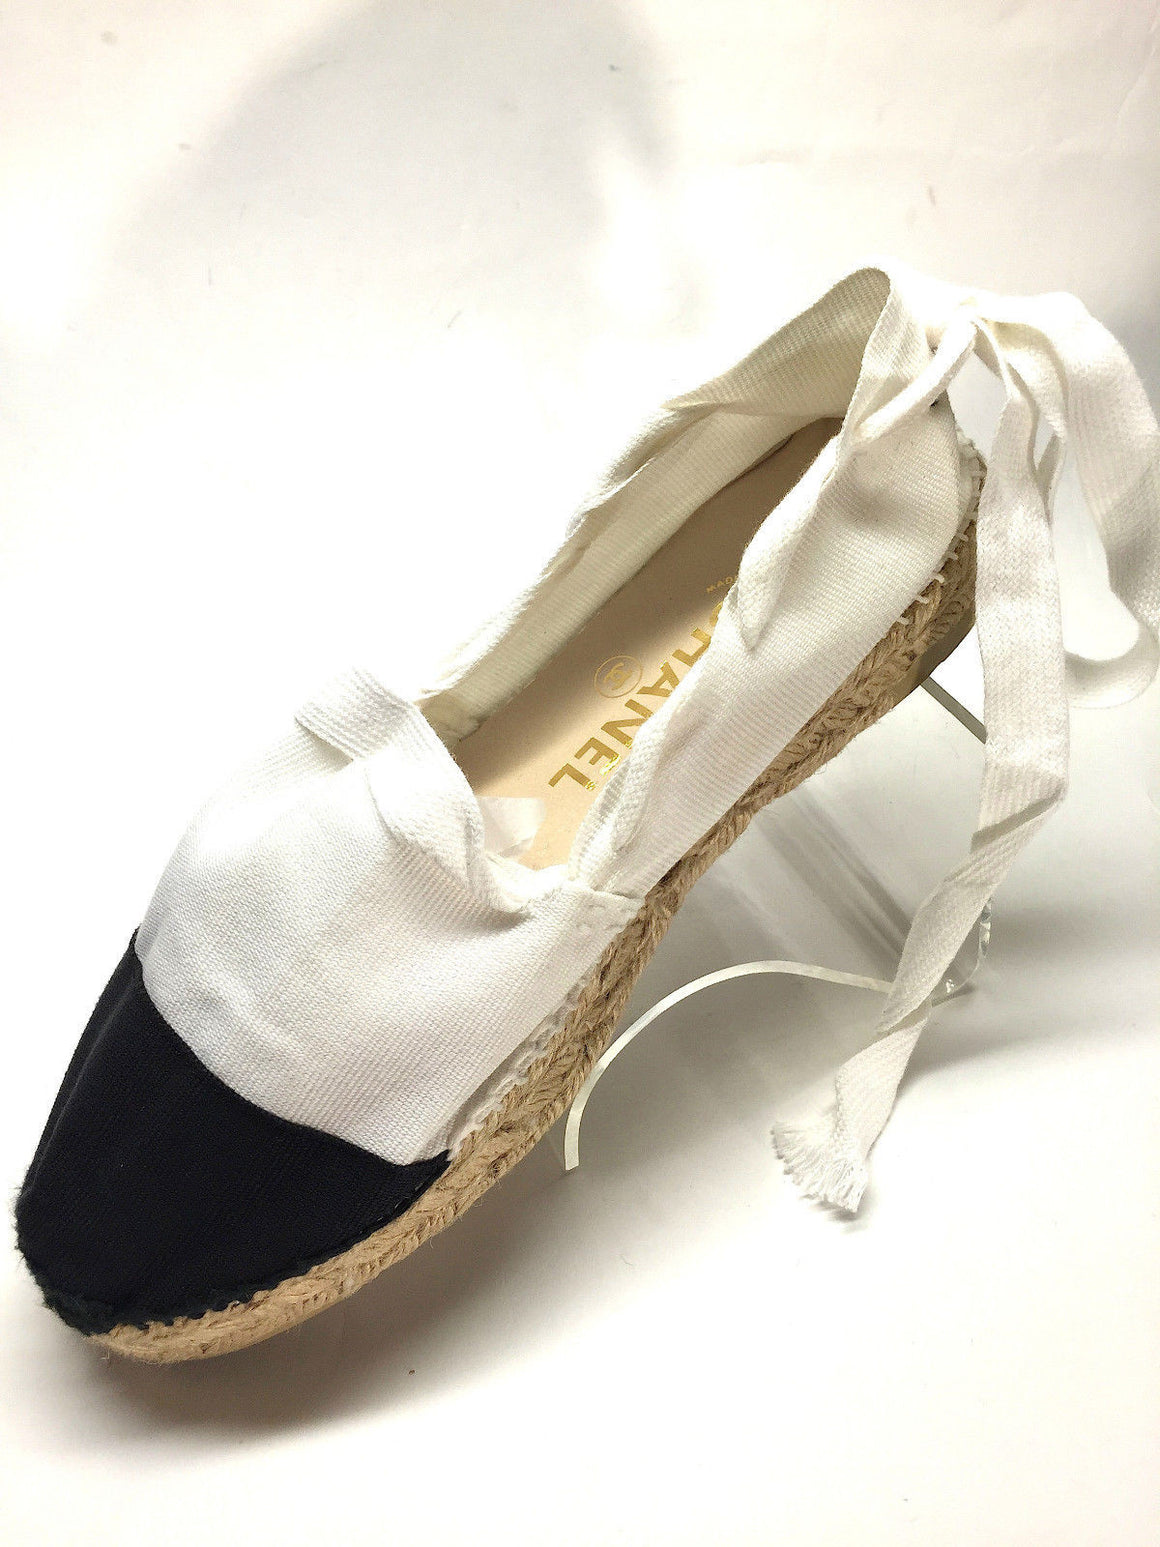 bisbiz.com CHANEL   Iconic White/Black Canvas Ankle Lace-Up  Hand-Sewn Flat Espadrilles  Size: 40/10 - Bis Luxury Resale